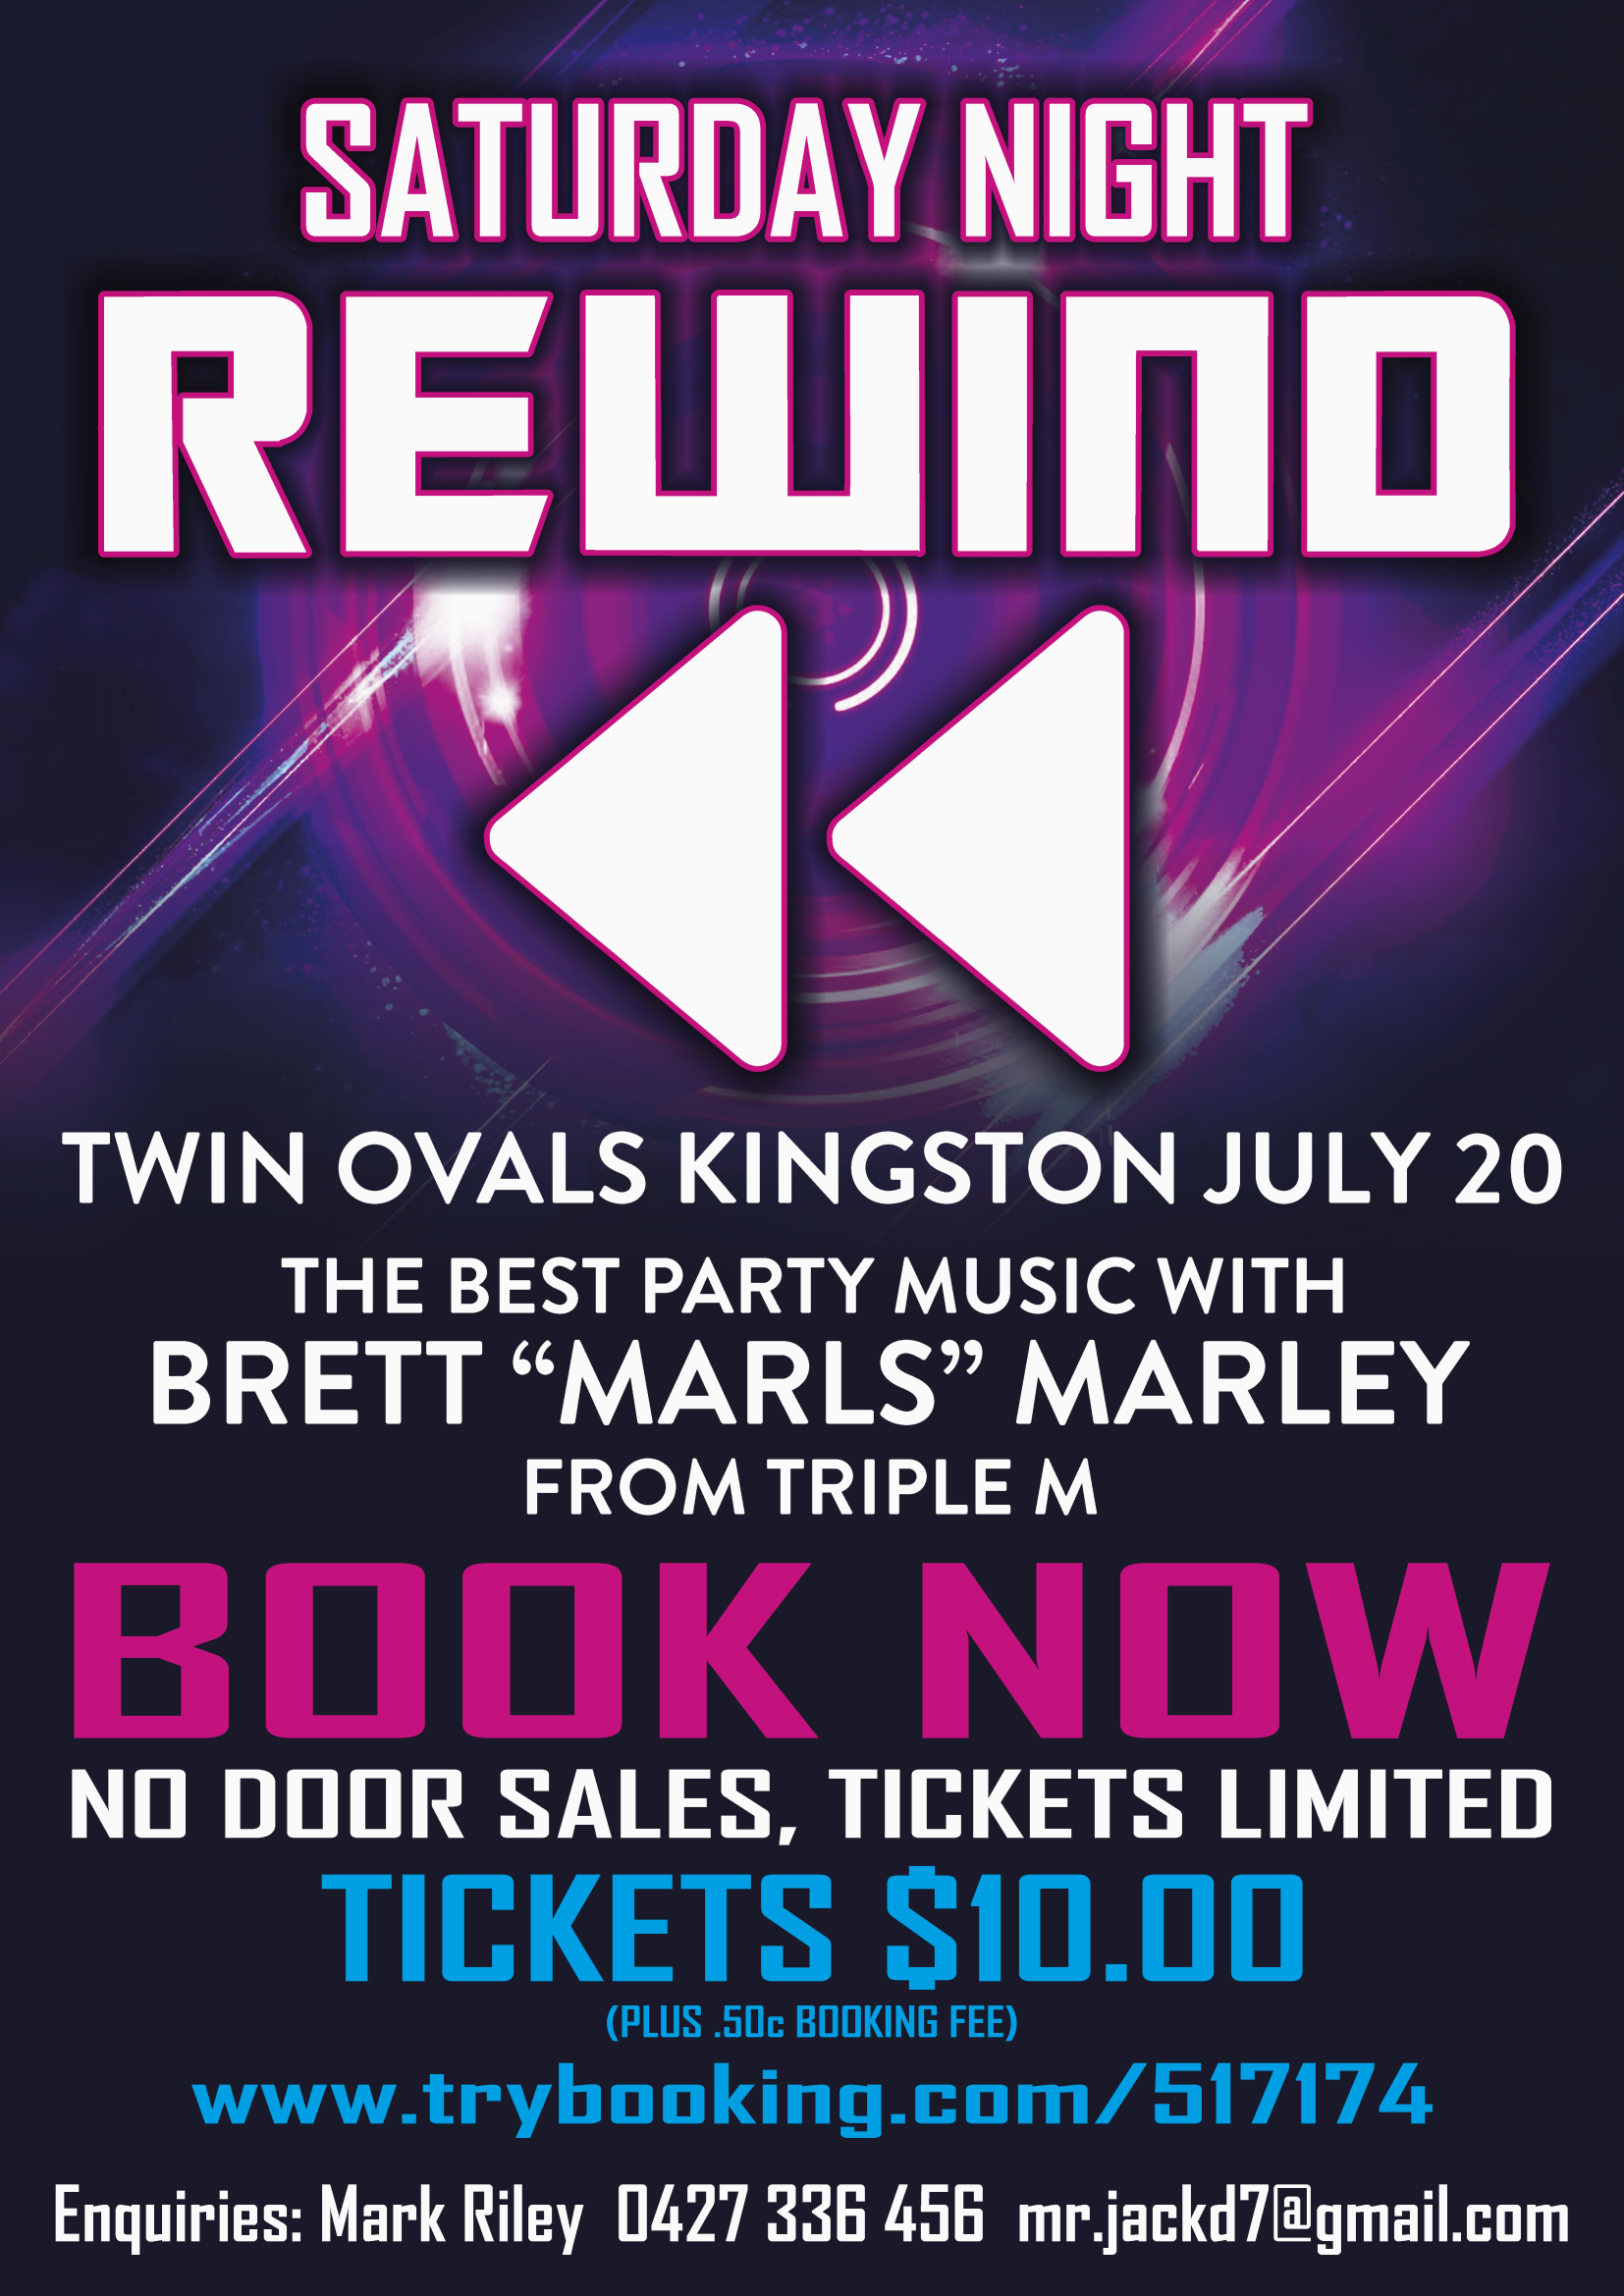 Brett Marley's – Saturday Night Rewind